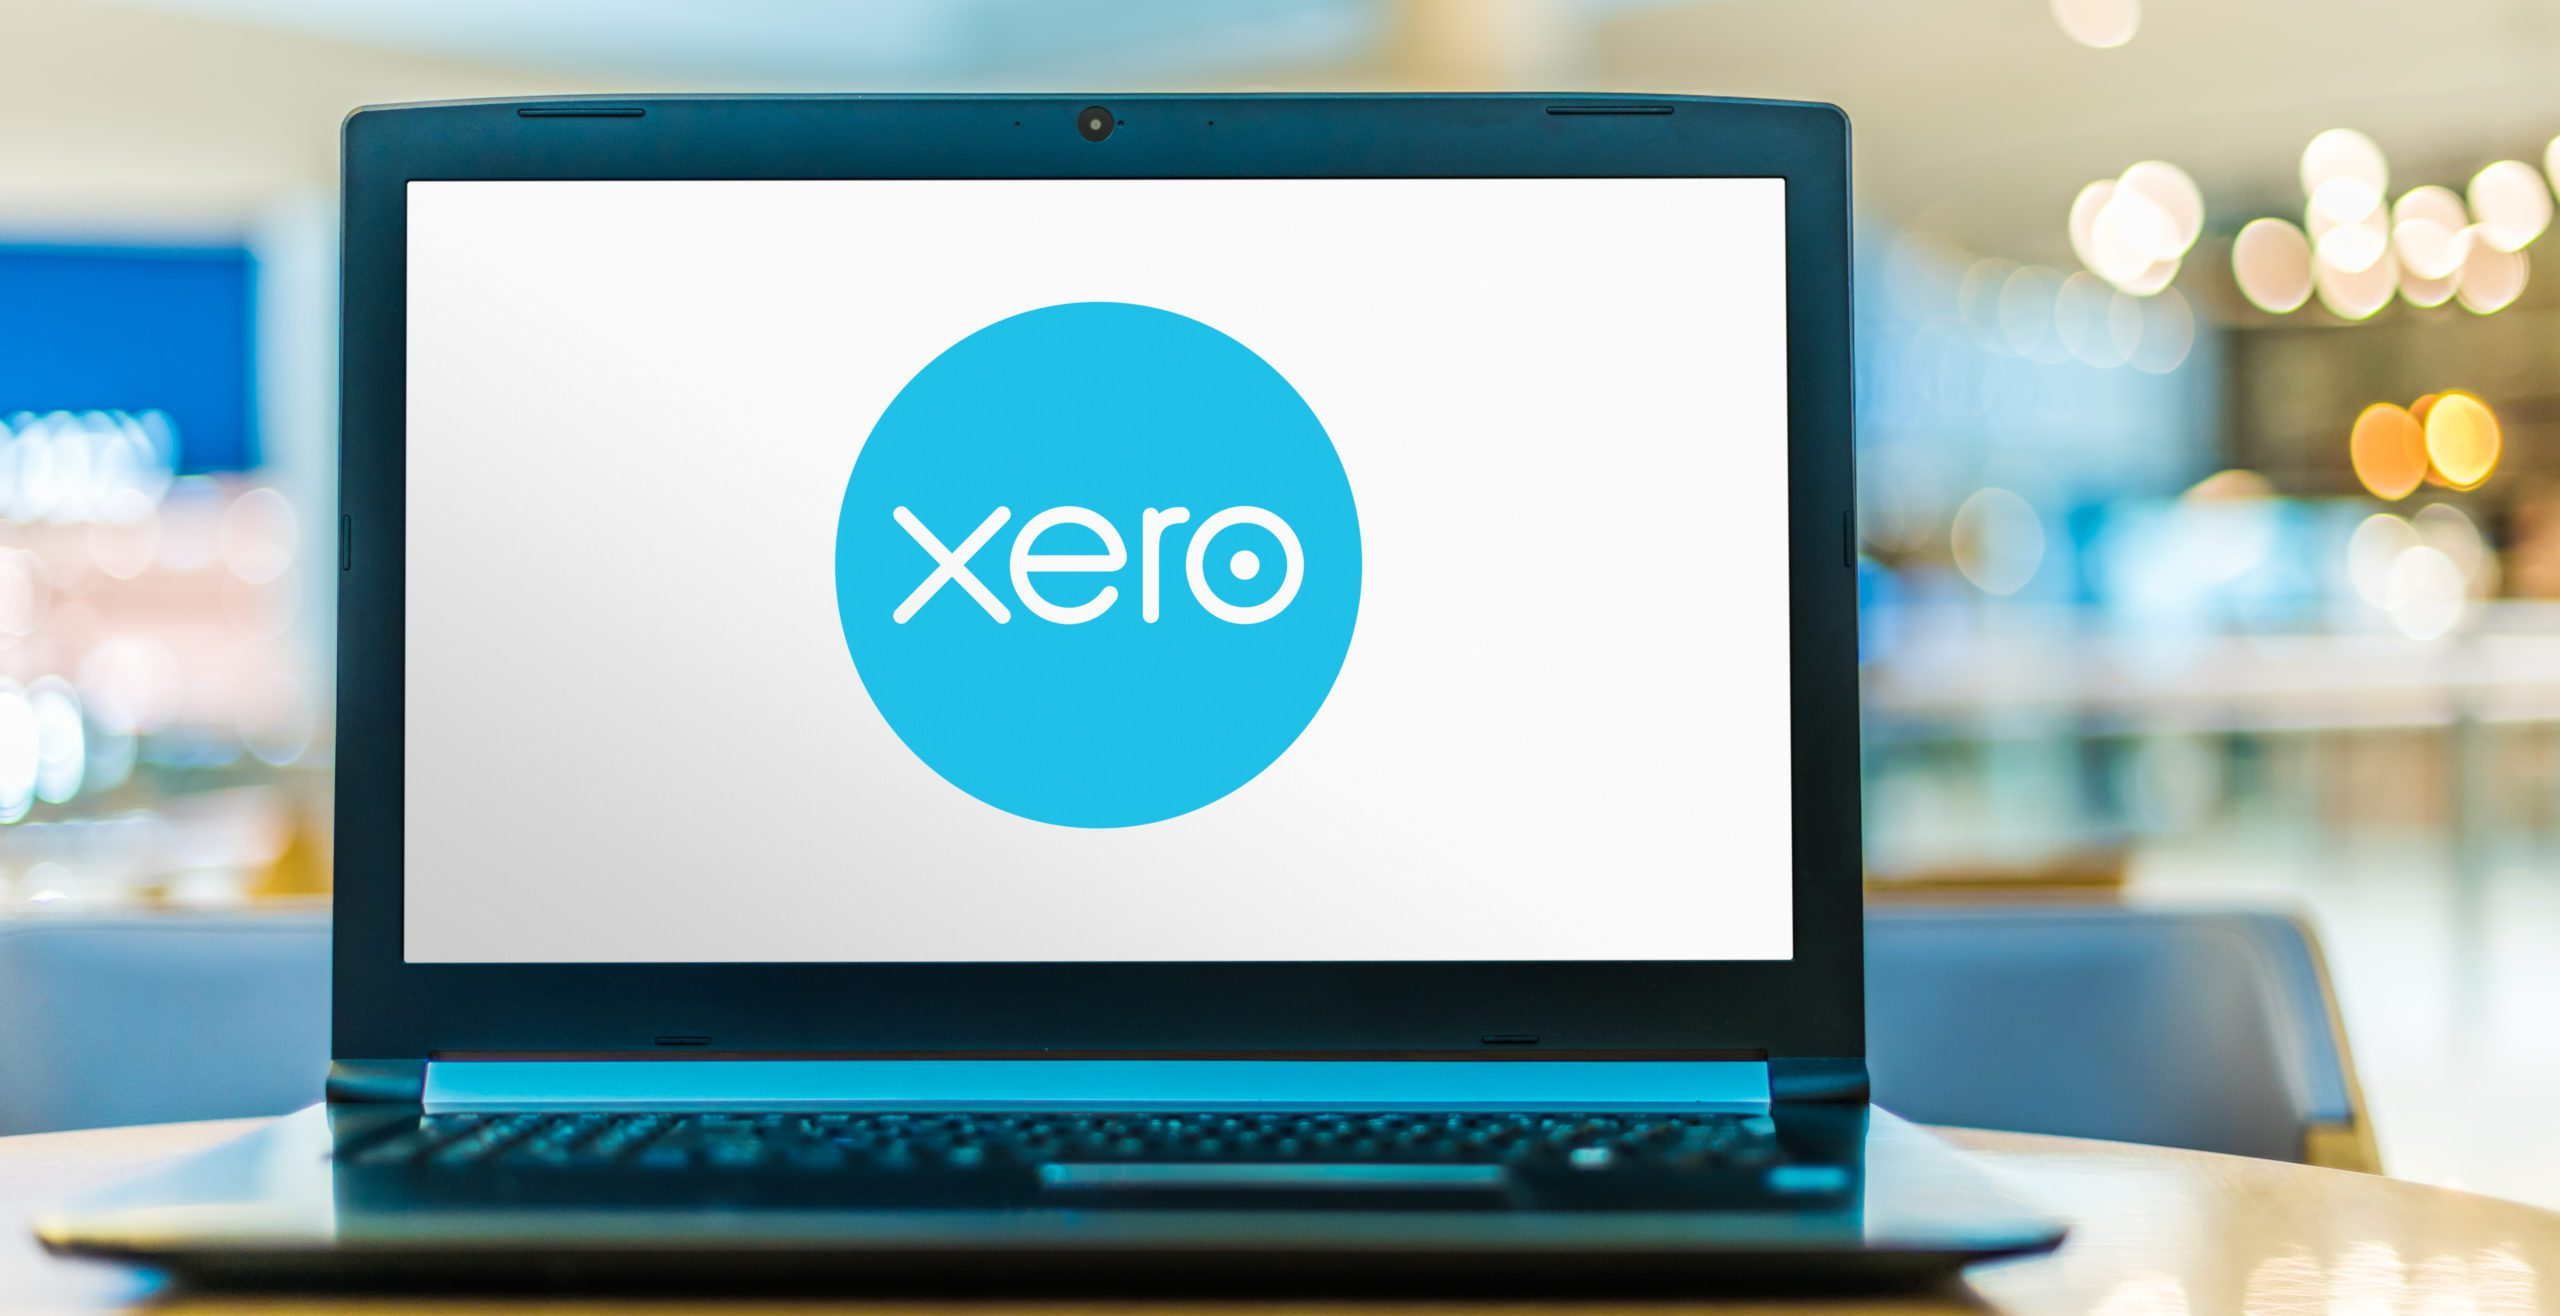 POZNAN, POL - JUN 16, 2020: Laptop computer displaying logo of Xero, a New Zealand technology company, offering a cloud-based accounting software platform for small and medium-sized businesses